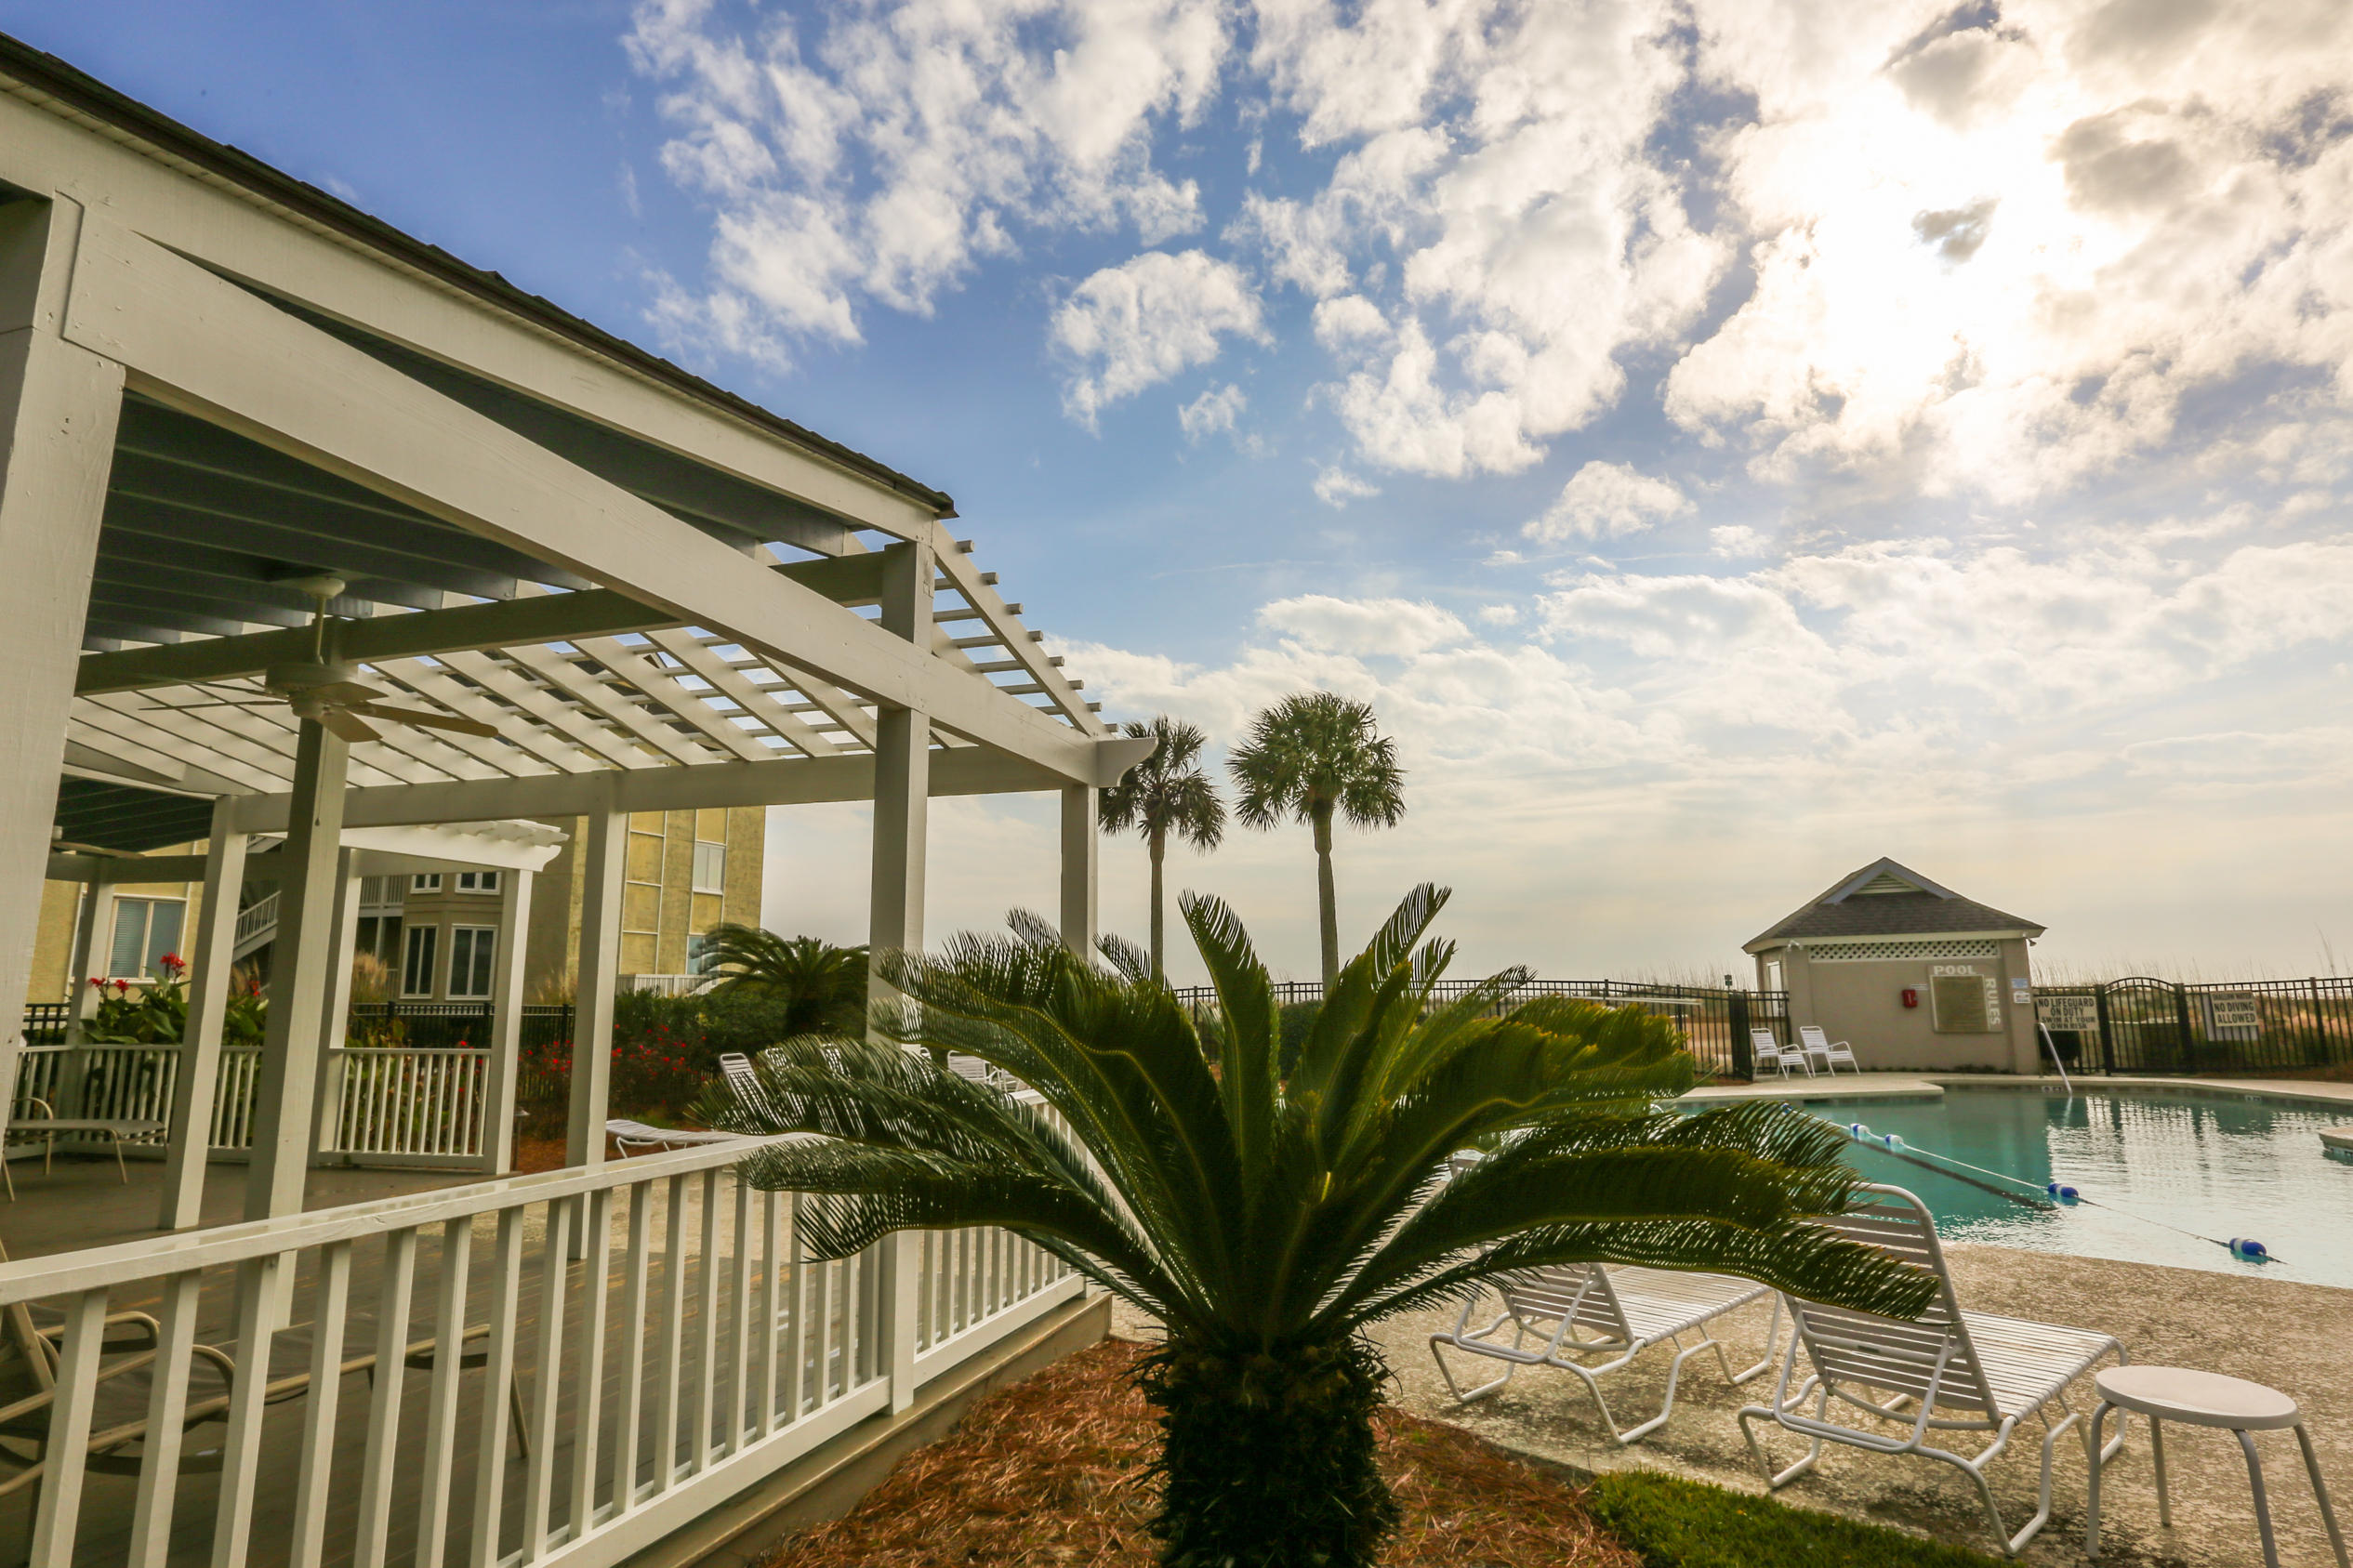 Wild Dunes Homes For Sale - 204-I Tidewater, Isle of Palms, SC - 20